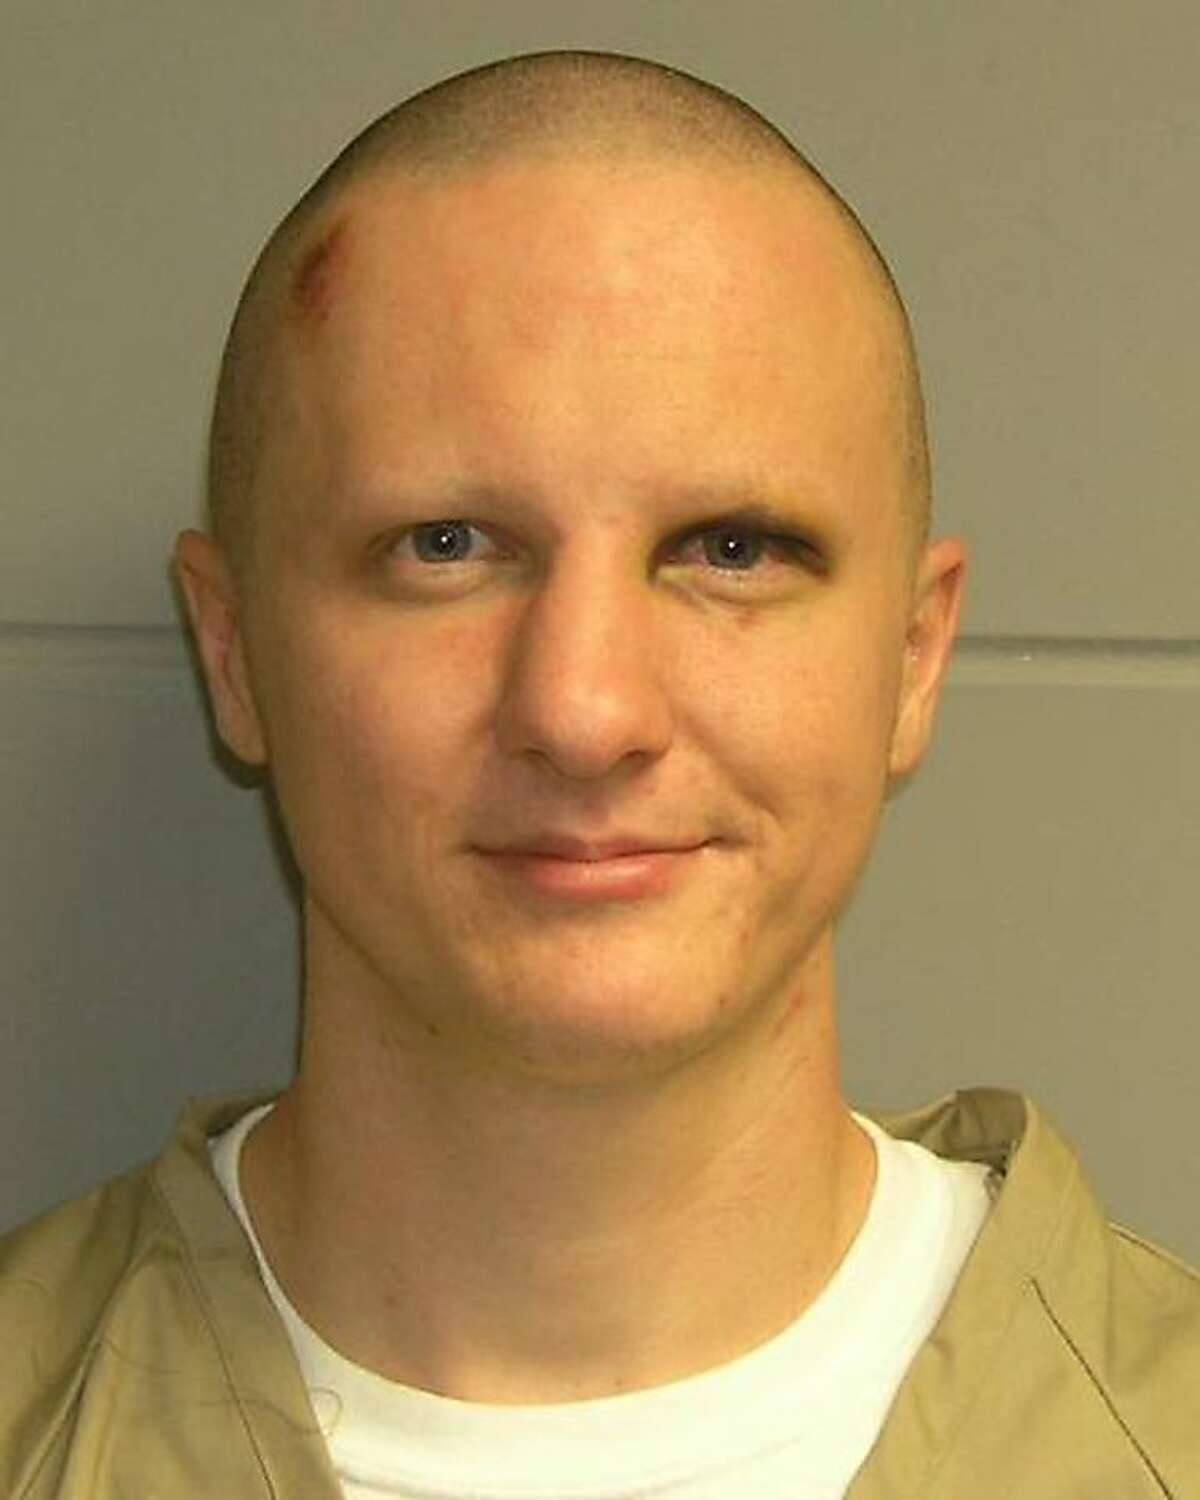 This photo released Tuesday, Feb. 22, 2011, by the U.S. Marshal's Service shows Jared Loughner. The photo was taken in Phoenix while Loughner was in the agency's custody.